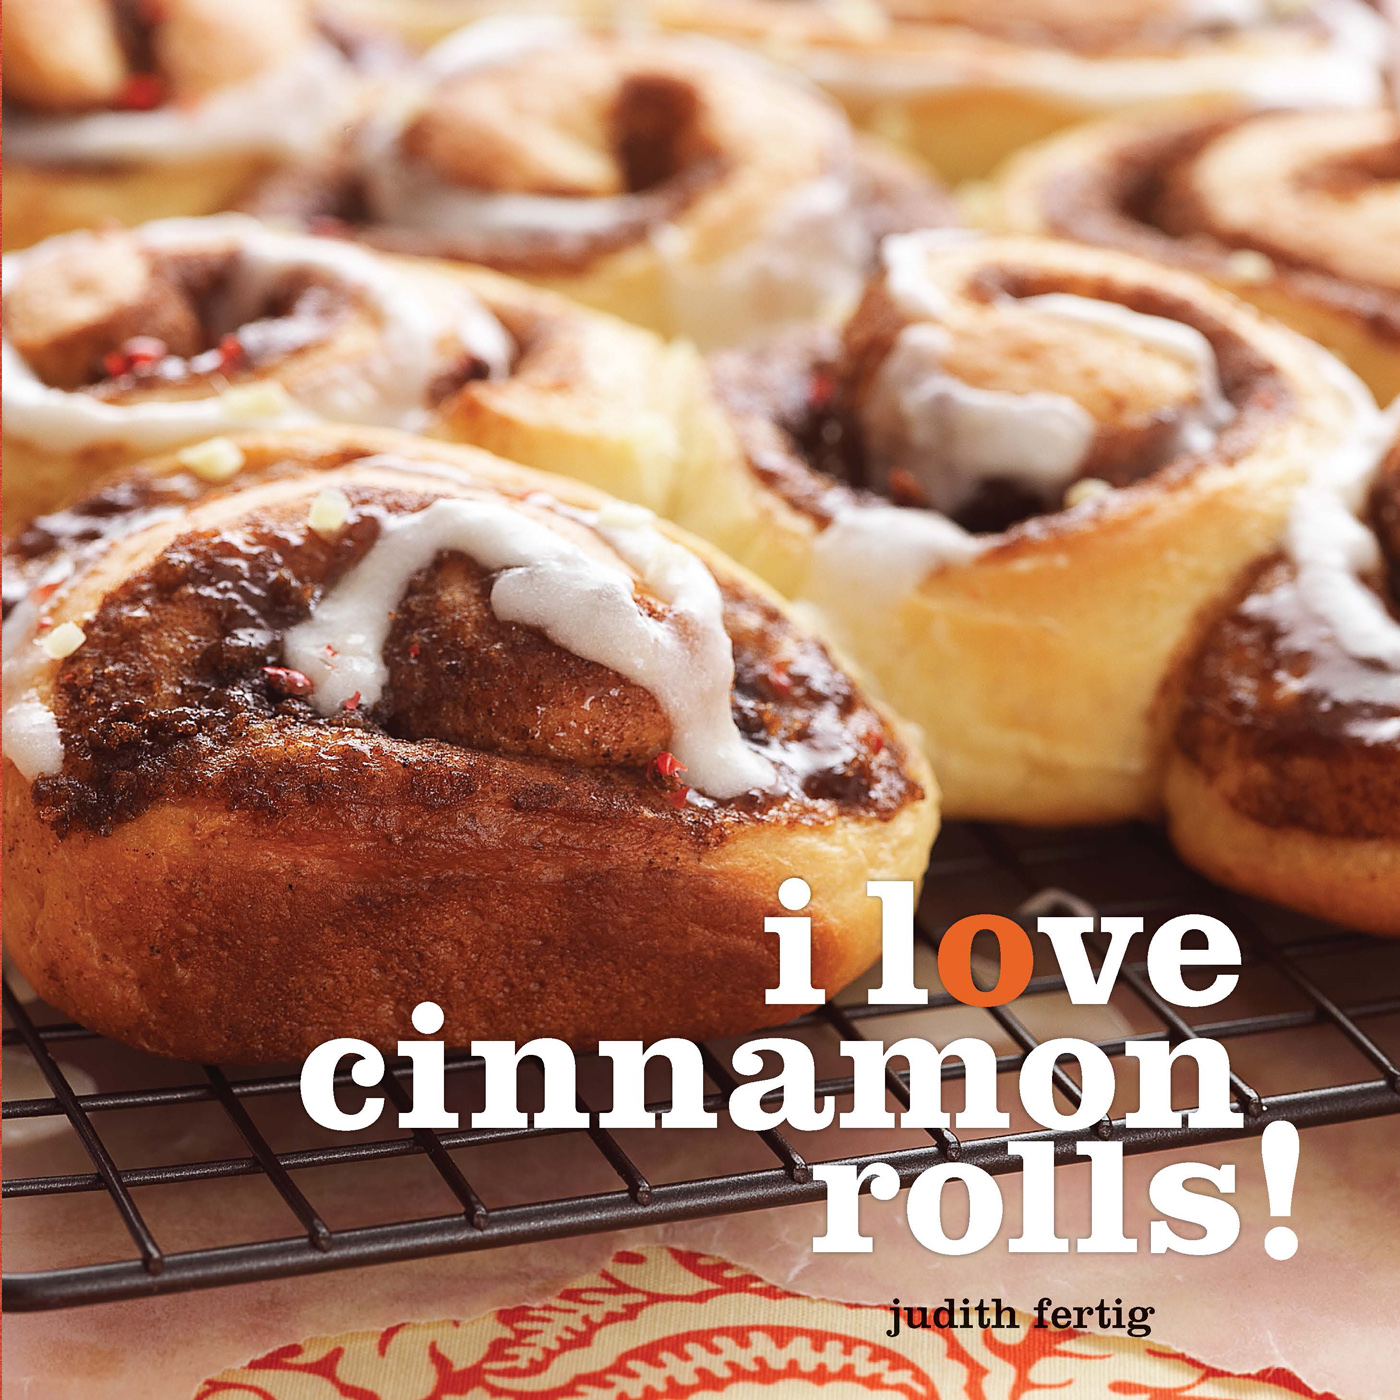 I Love Cinnamon Rolls! By: Judith Fertig